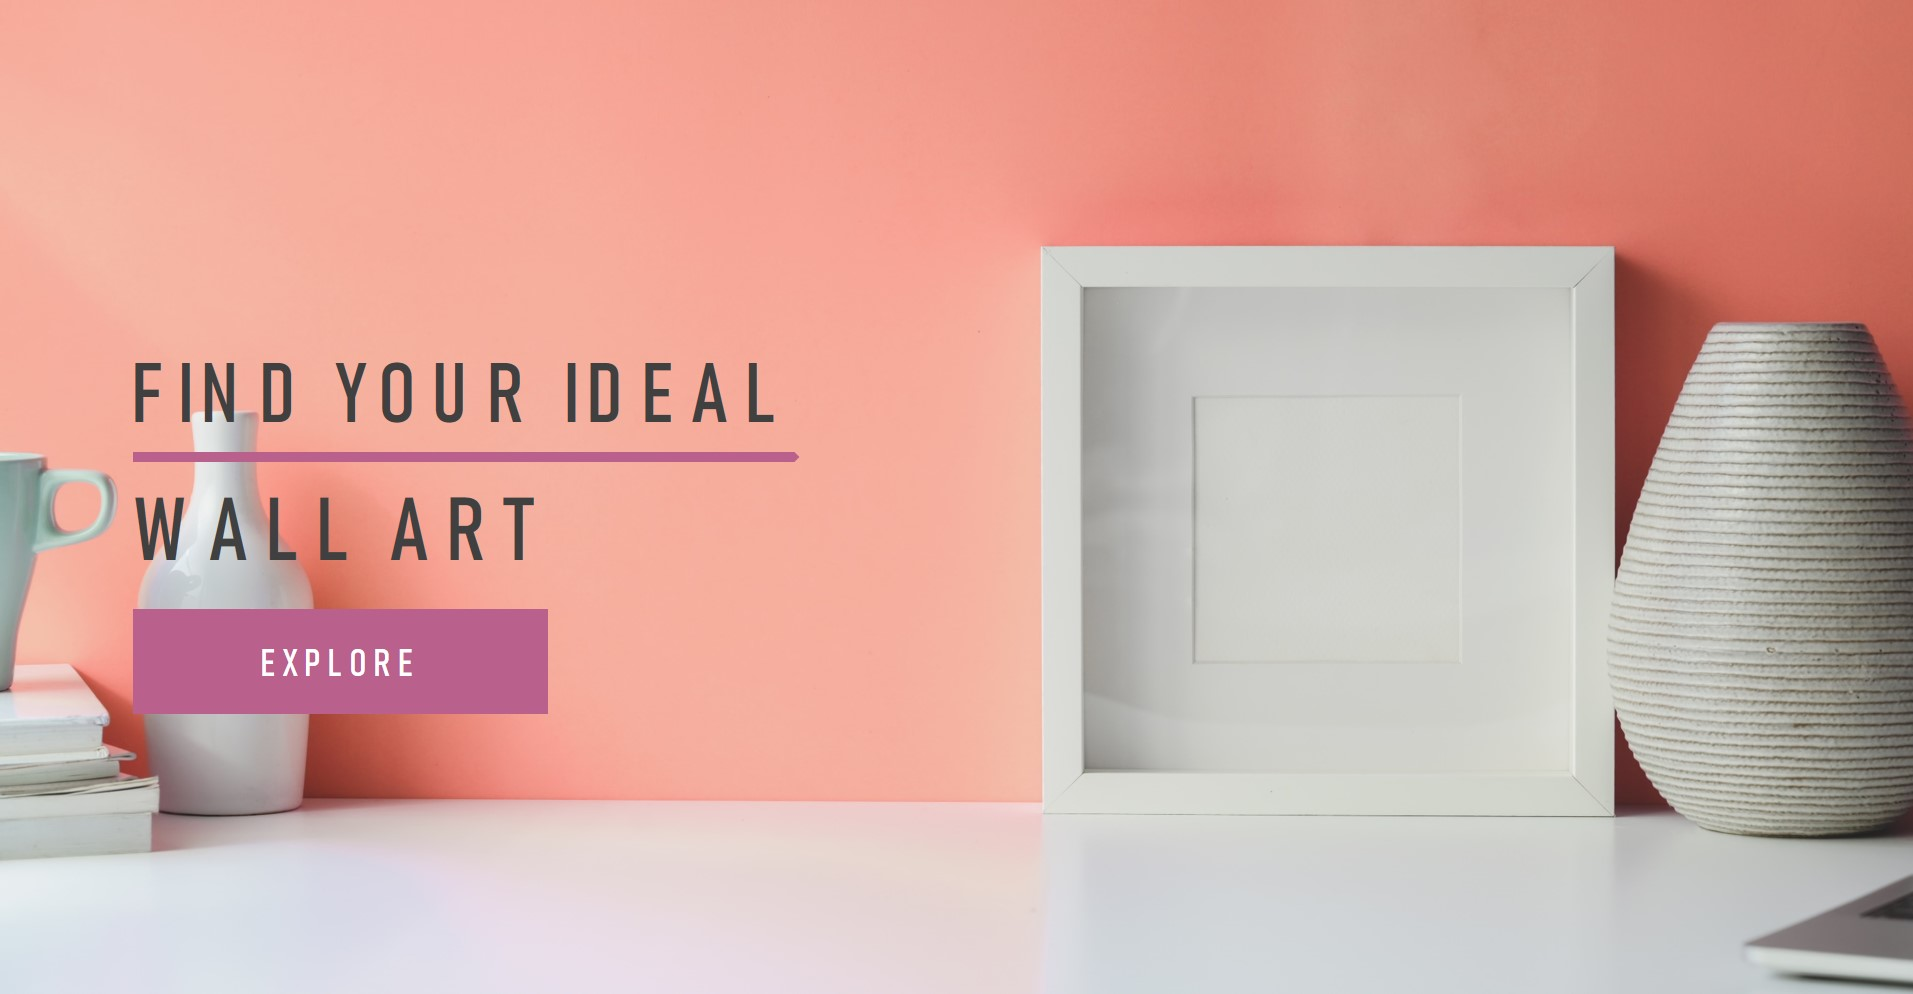 Find Your Ideal Wall Art